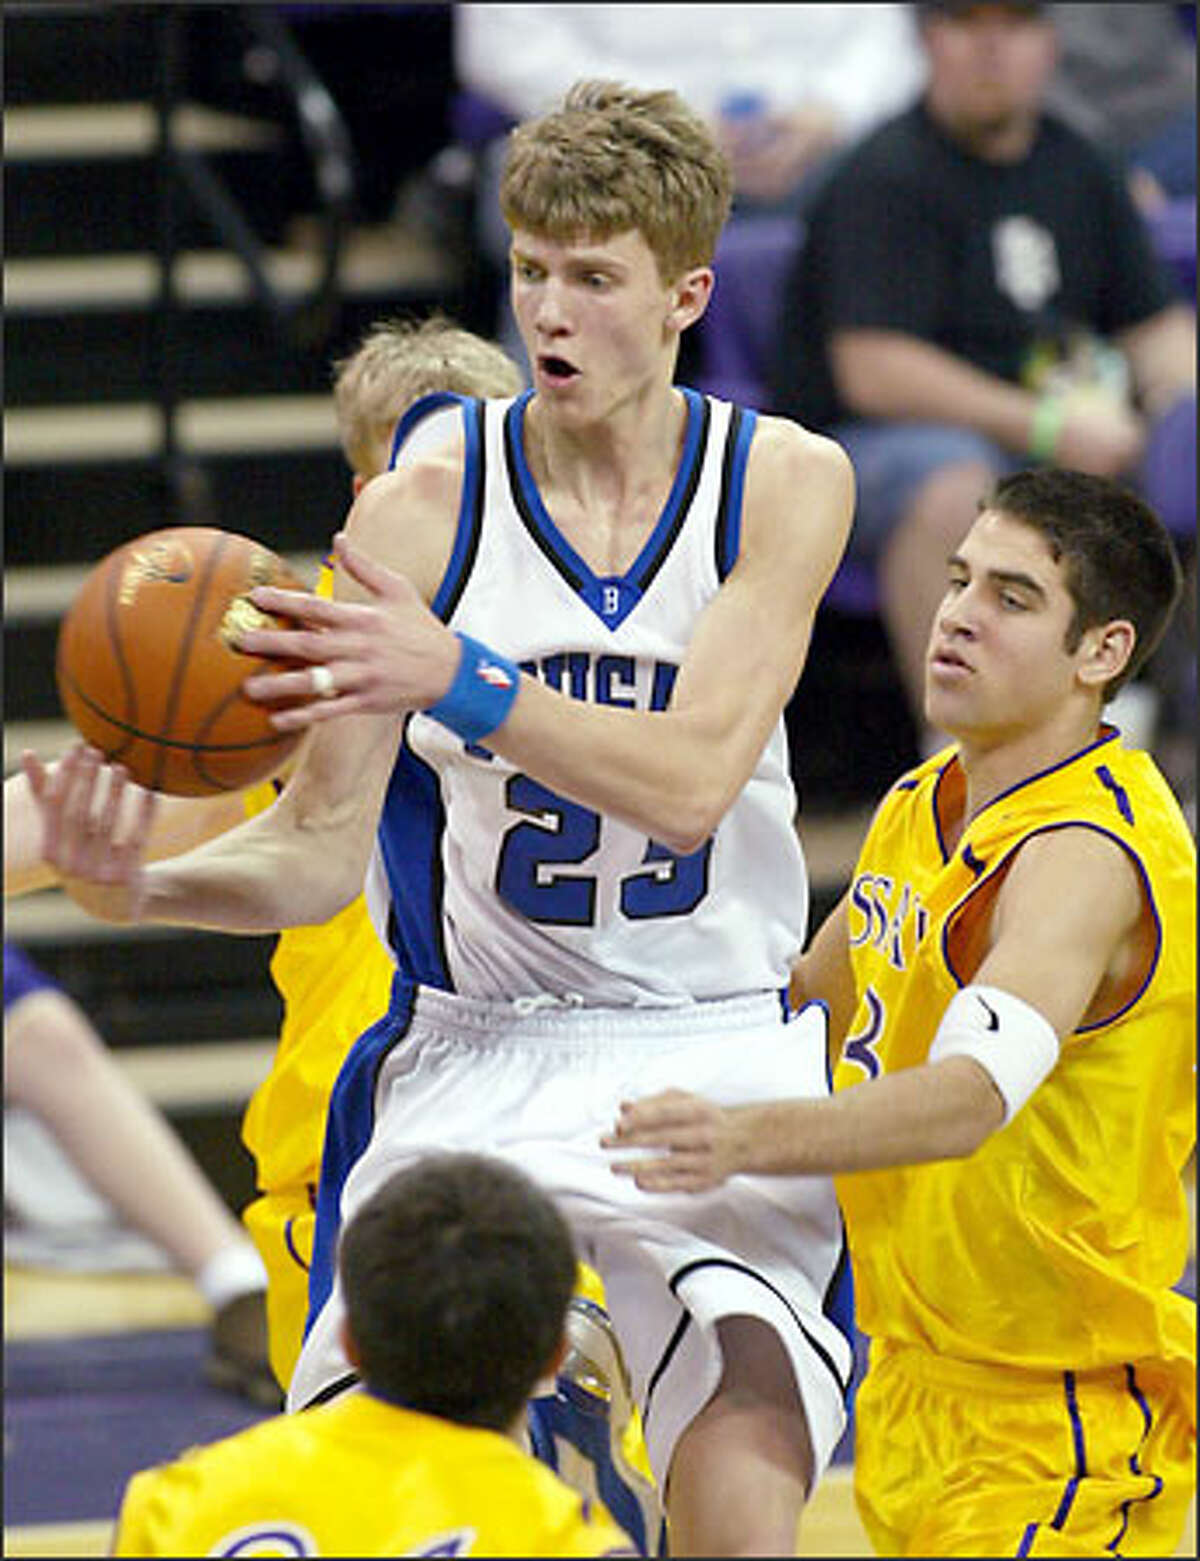 Bothell's Micah Downs, a junior transfer who finished with 16 points, 12 rebounds, four assists and four steals, beats Issaquah's Curtis Reynolds to the ball yesterday at Hec Edmundson Pavilion.